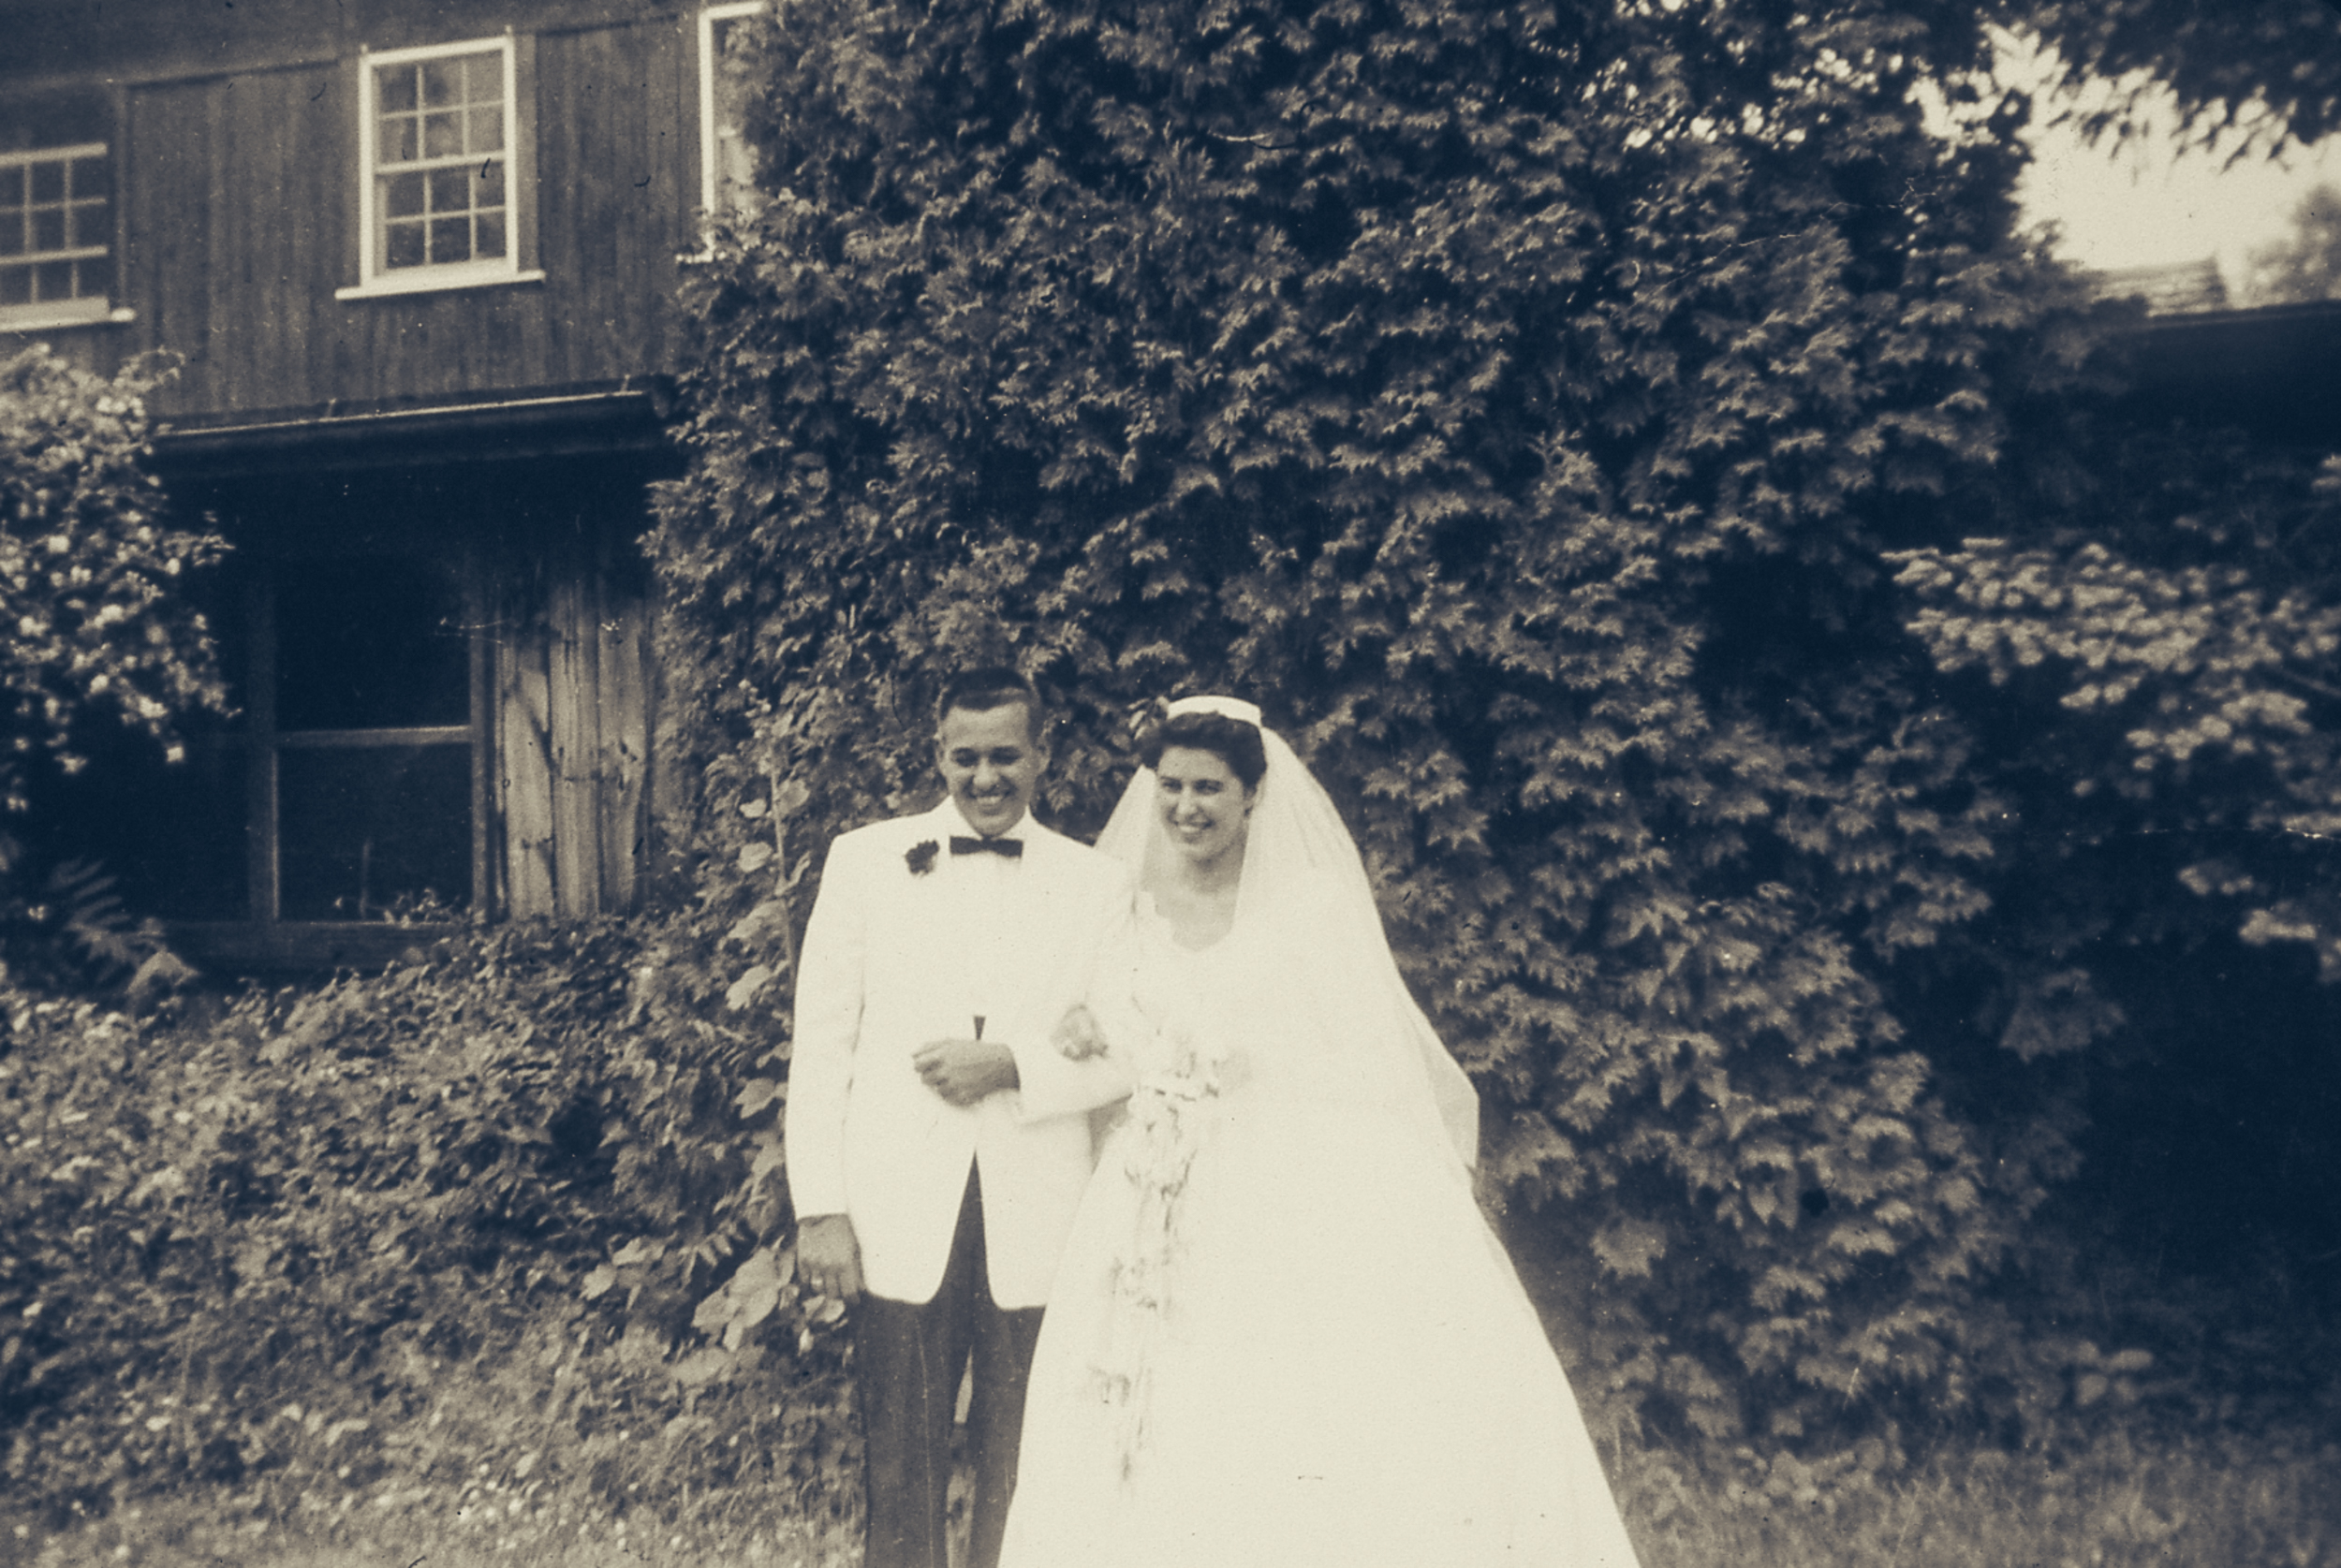 I found this Kodachrome slide of my mom's parent's wedding day hidden away in a closet in a locked box (wasn't that hard to break in). I love finding goldmines of family history.